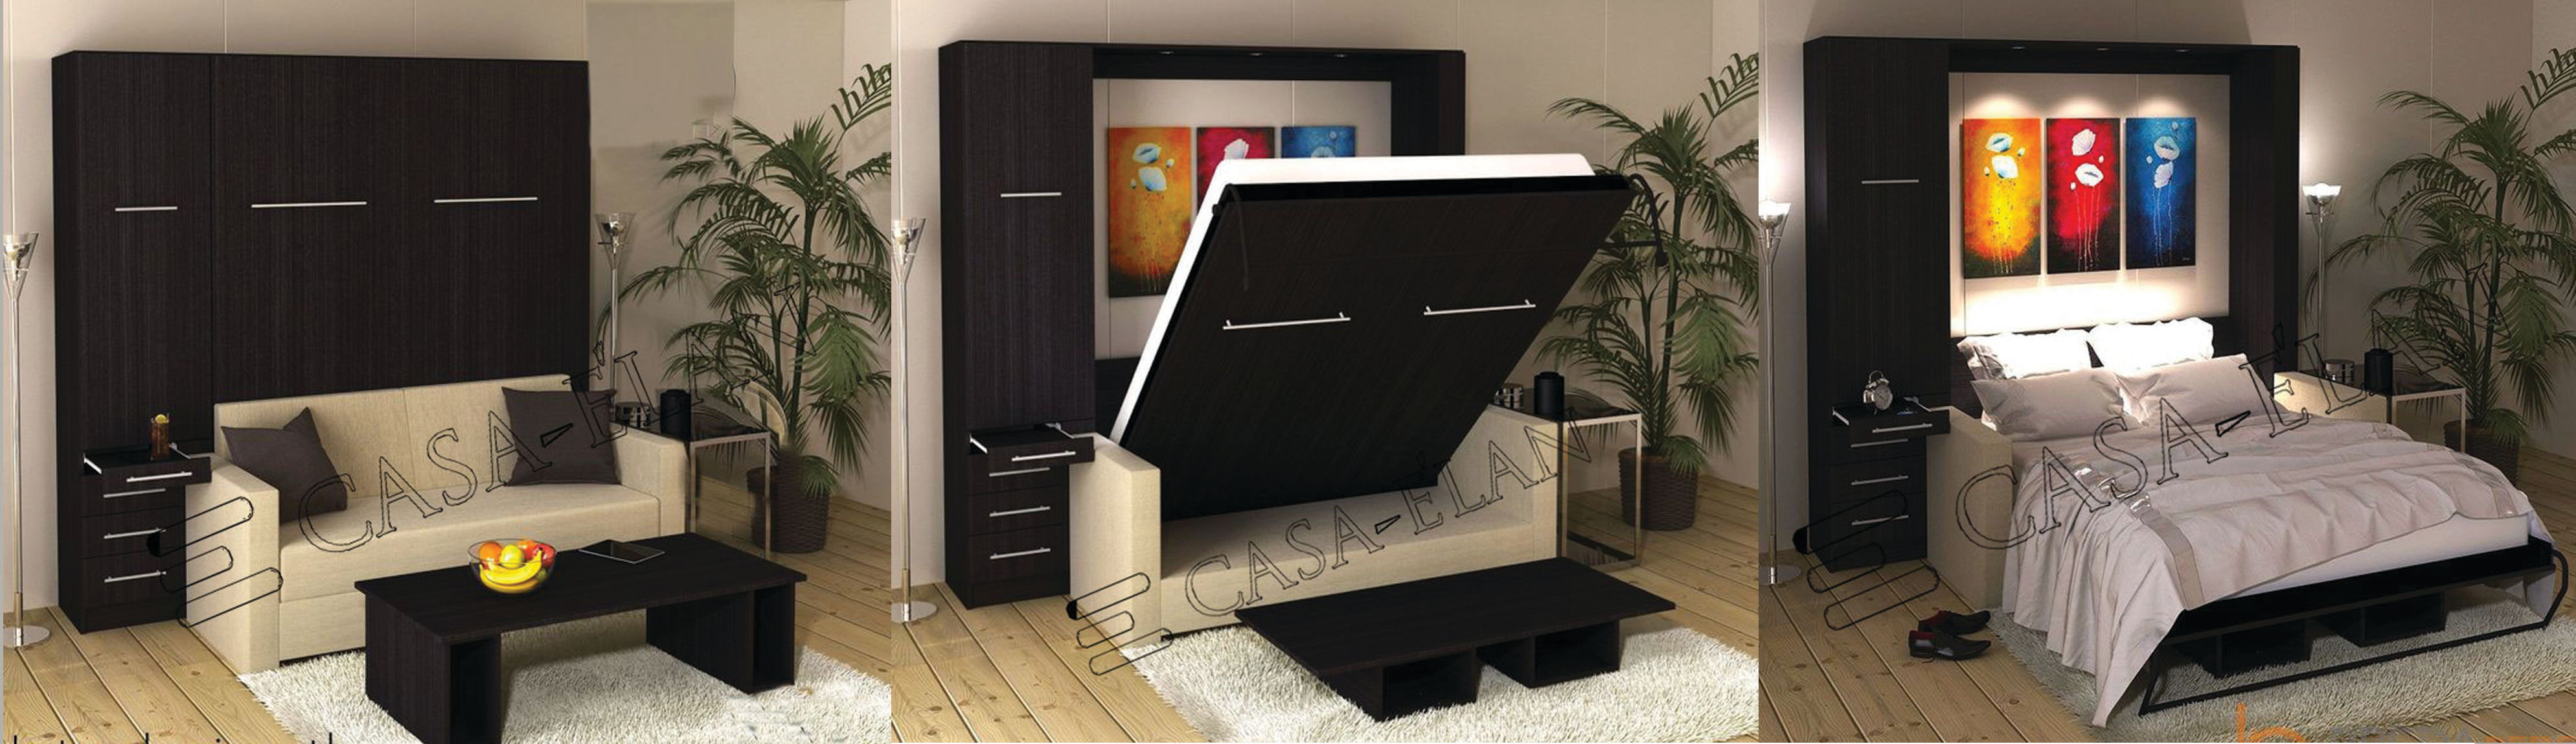 Casa Elan Murphy Folding Wall Bed Models دبي